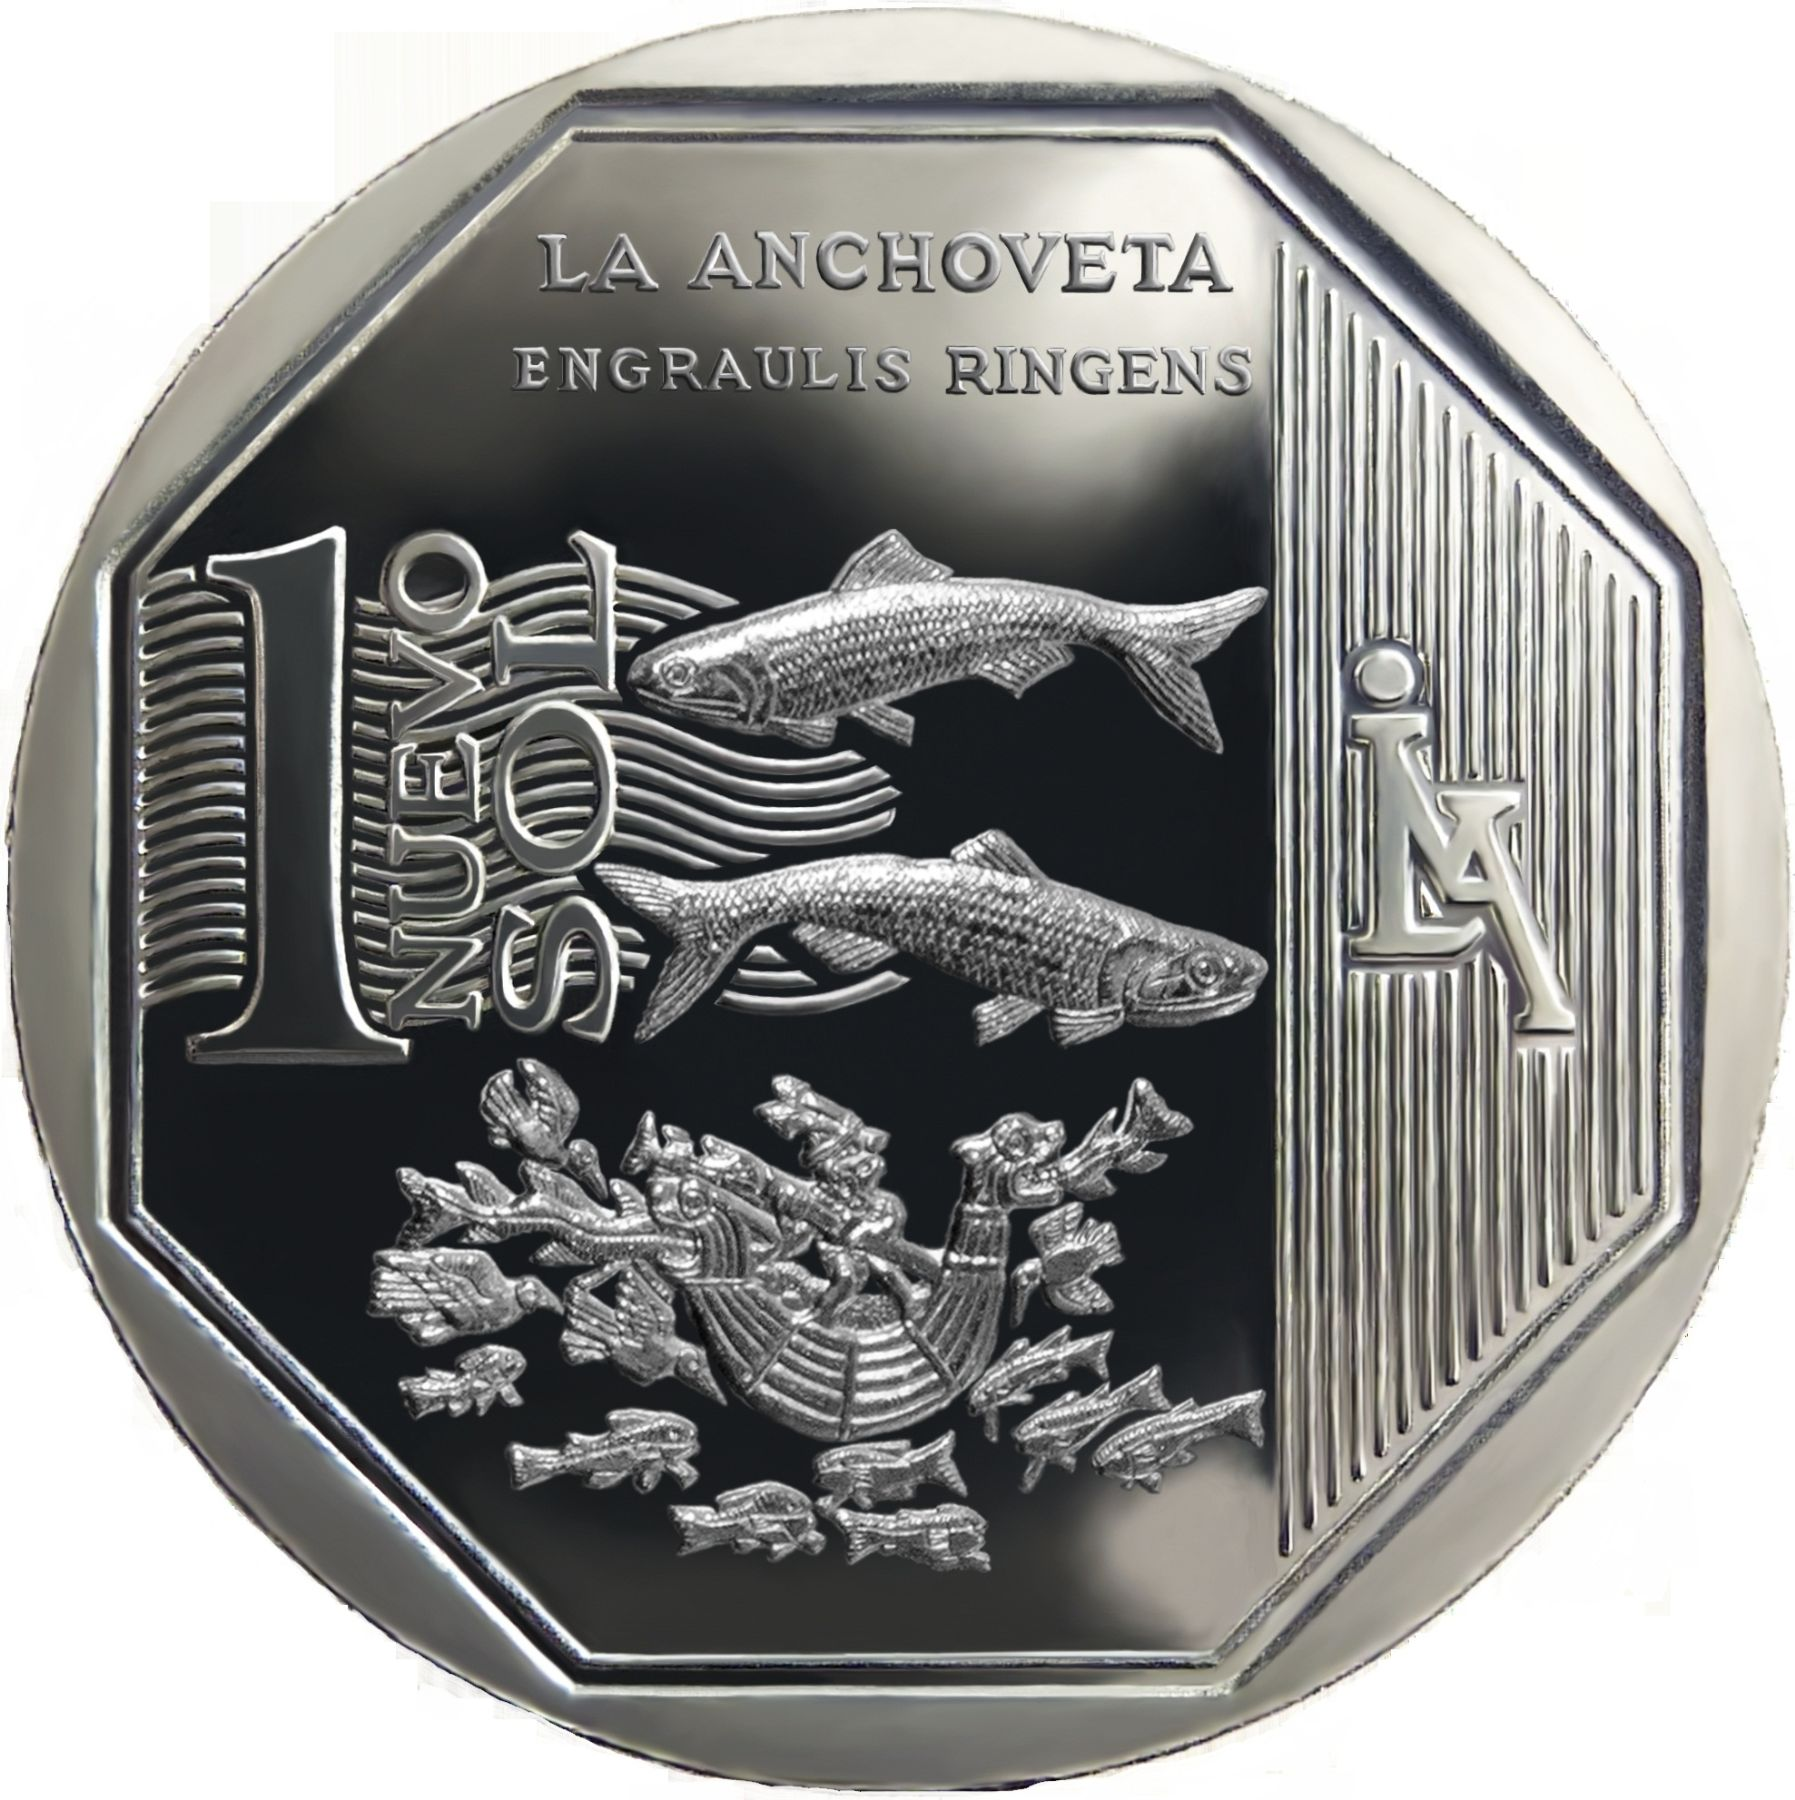 New one sol coin depicting anchovy.